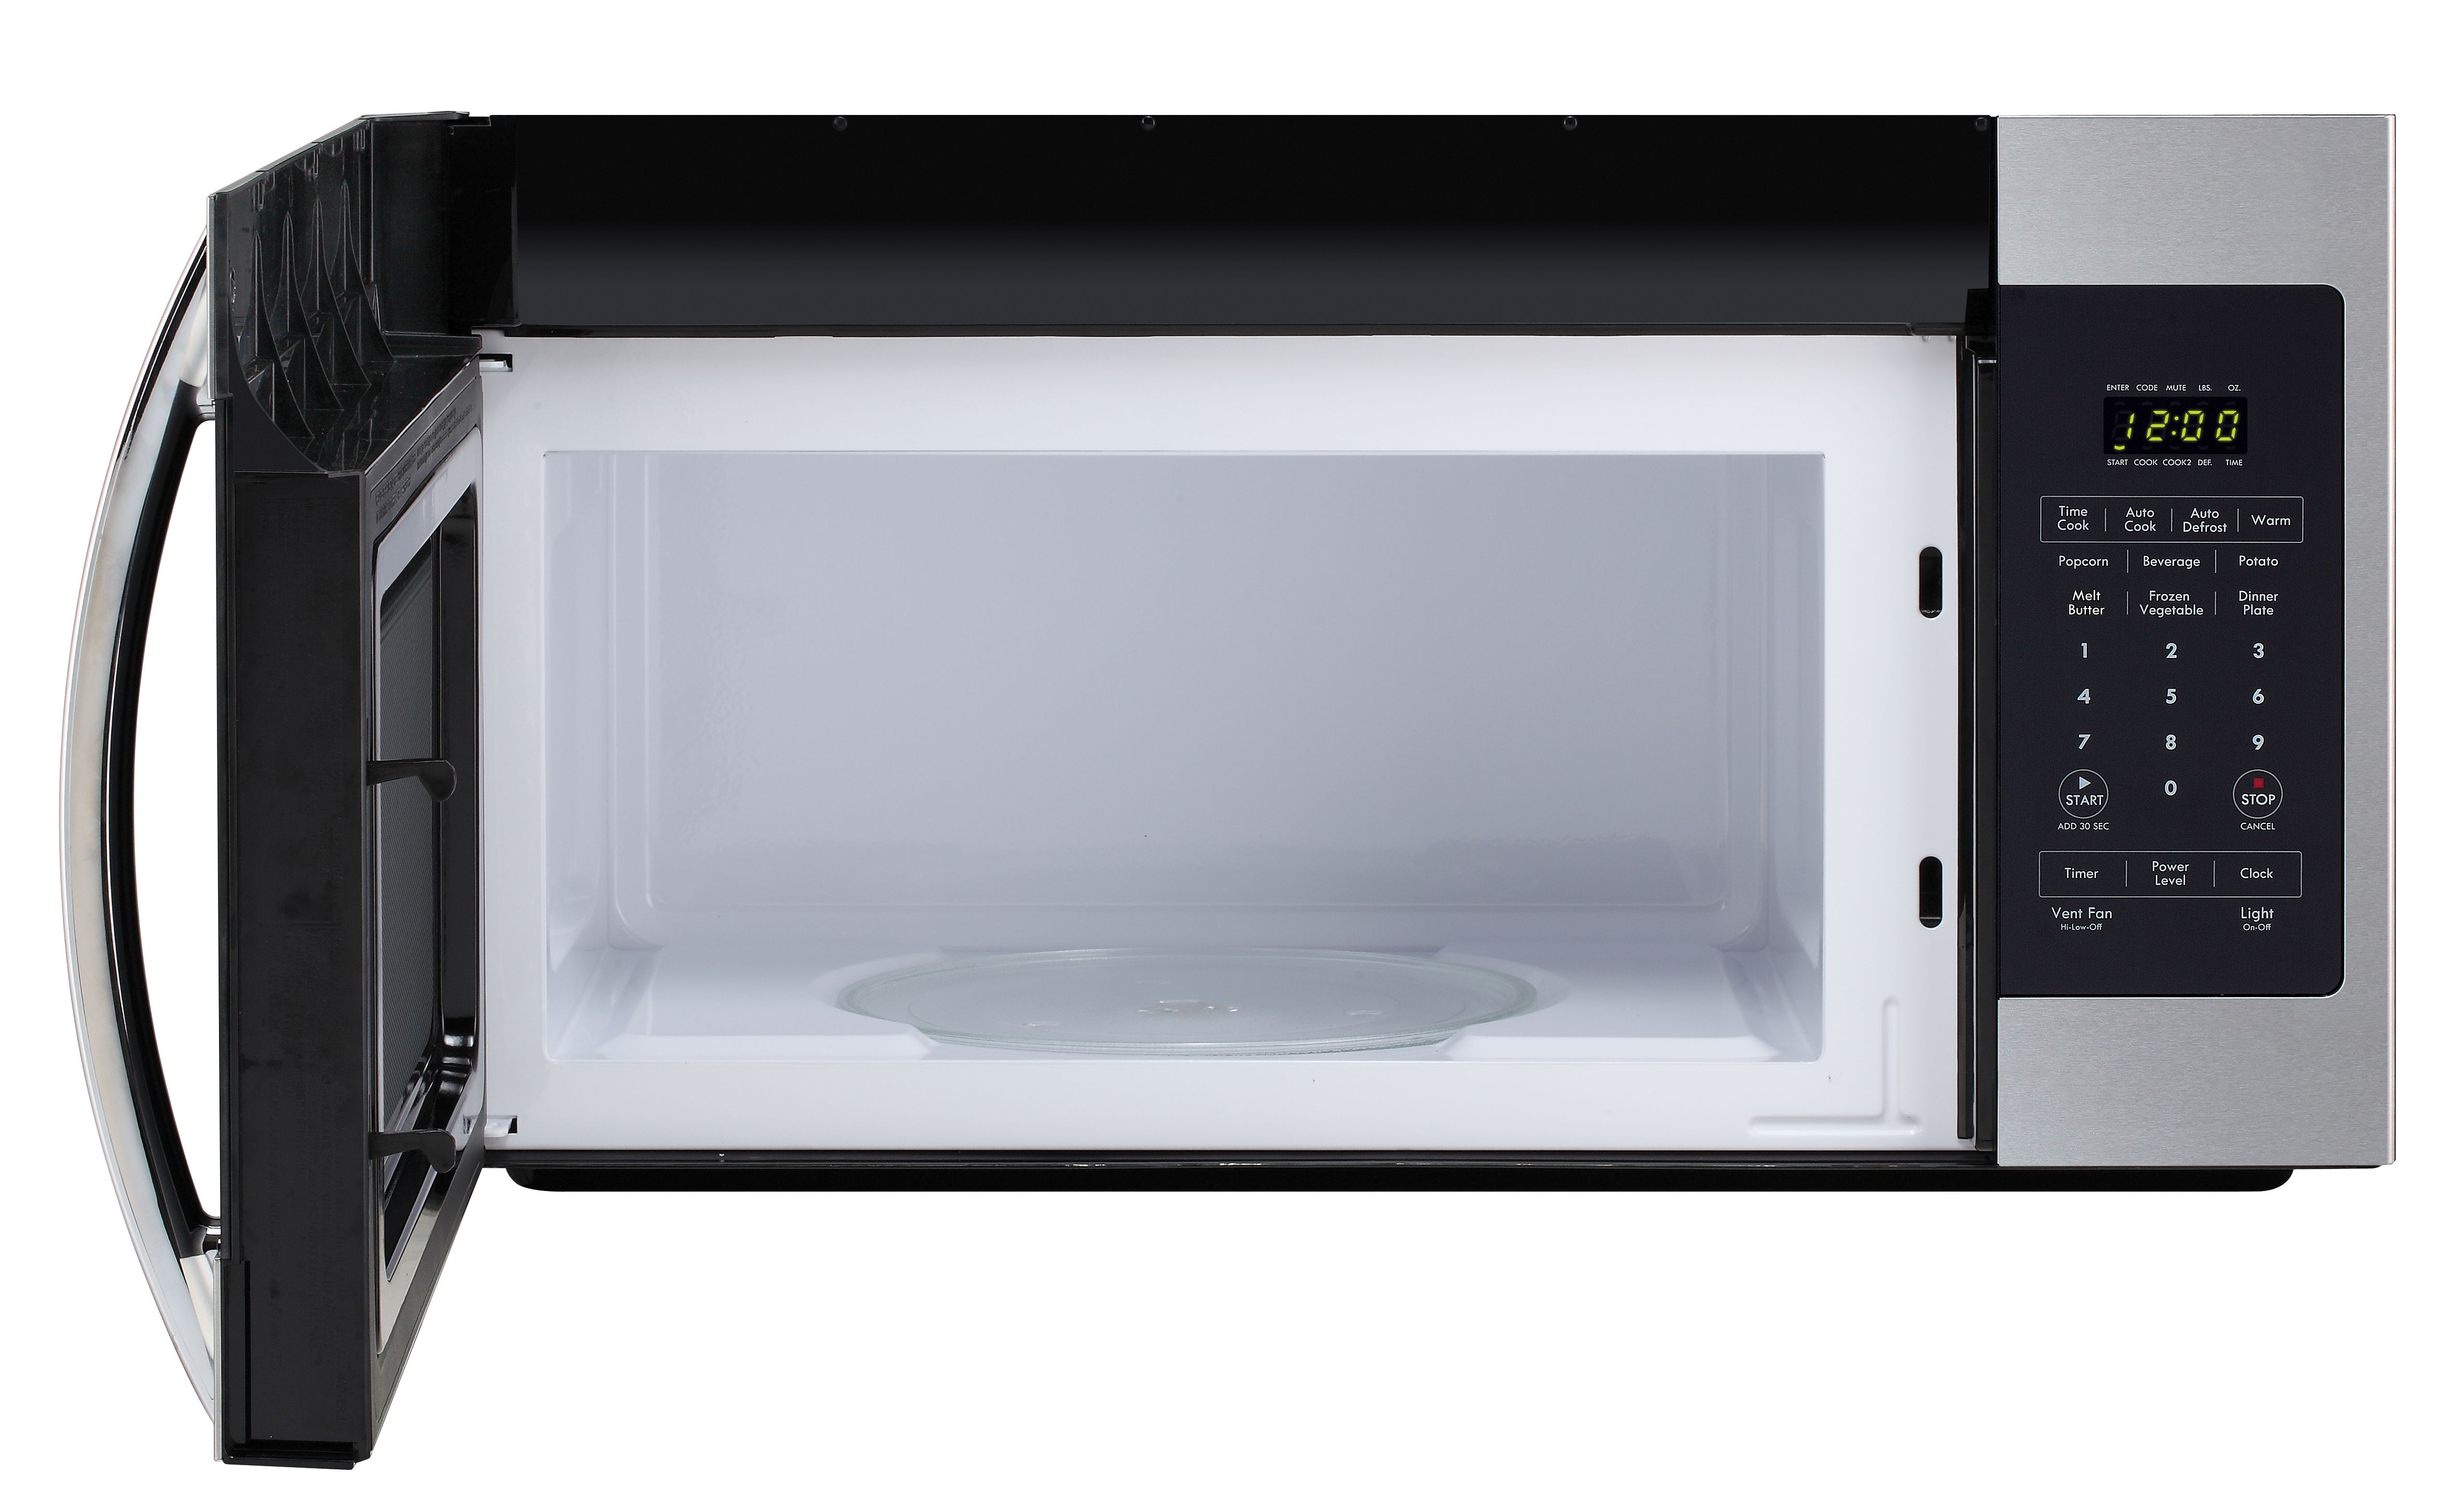 kenmore 83523 1 6 cu ft over the